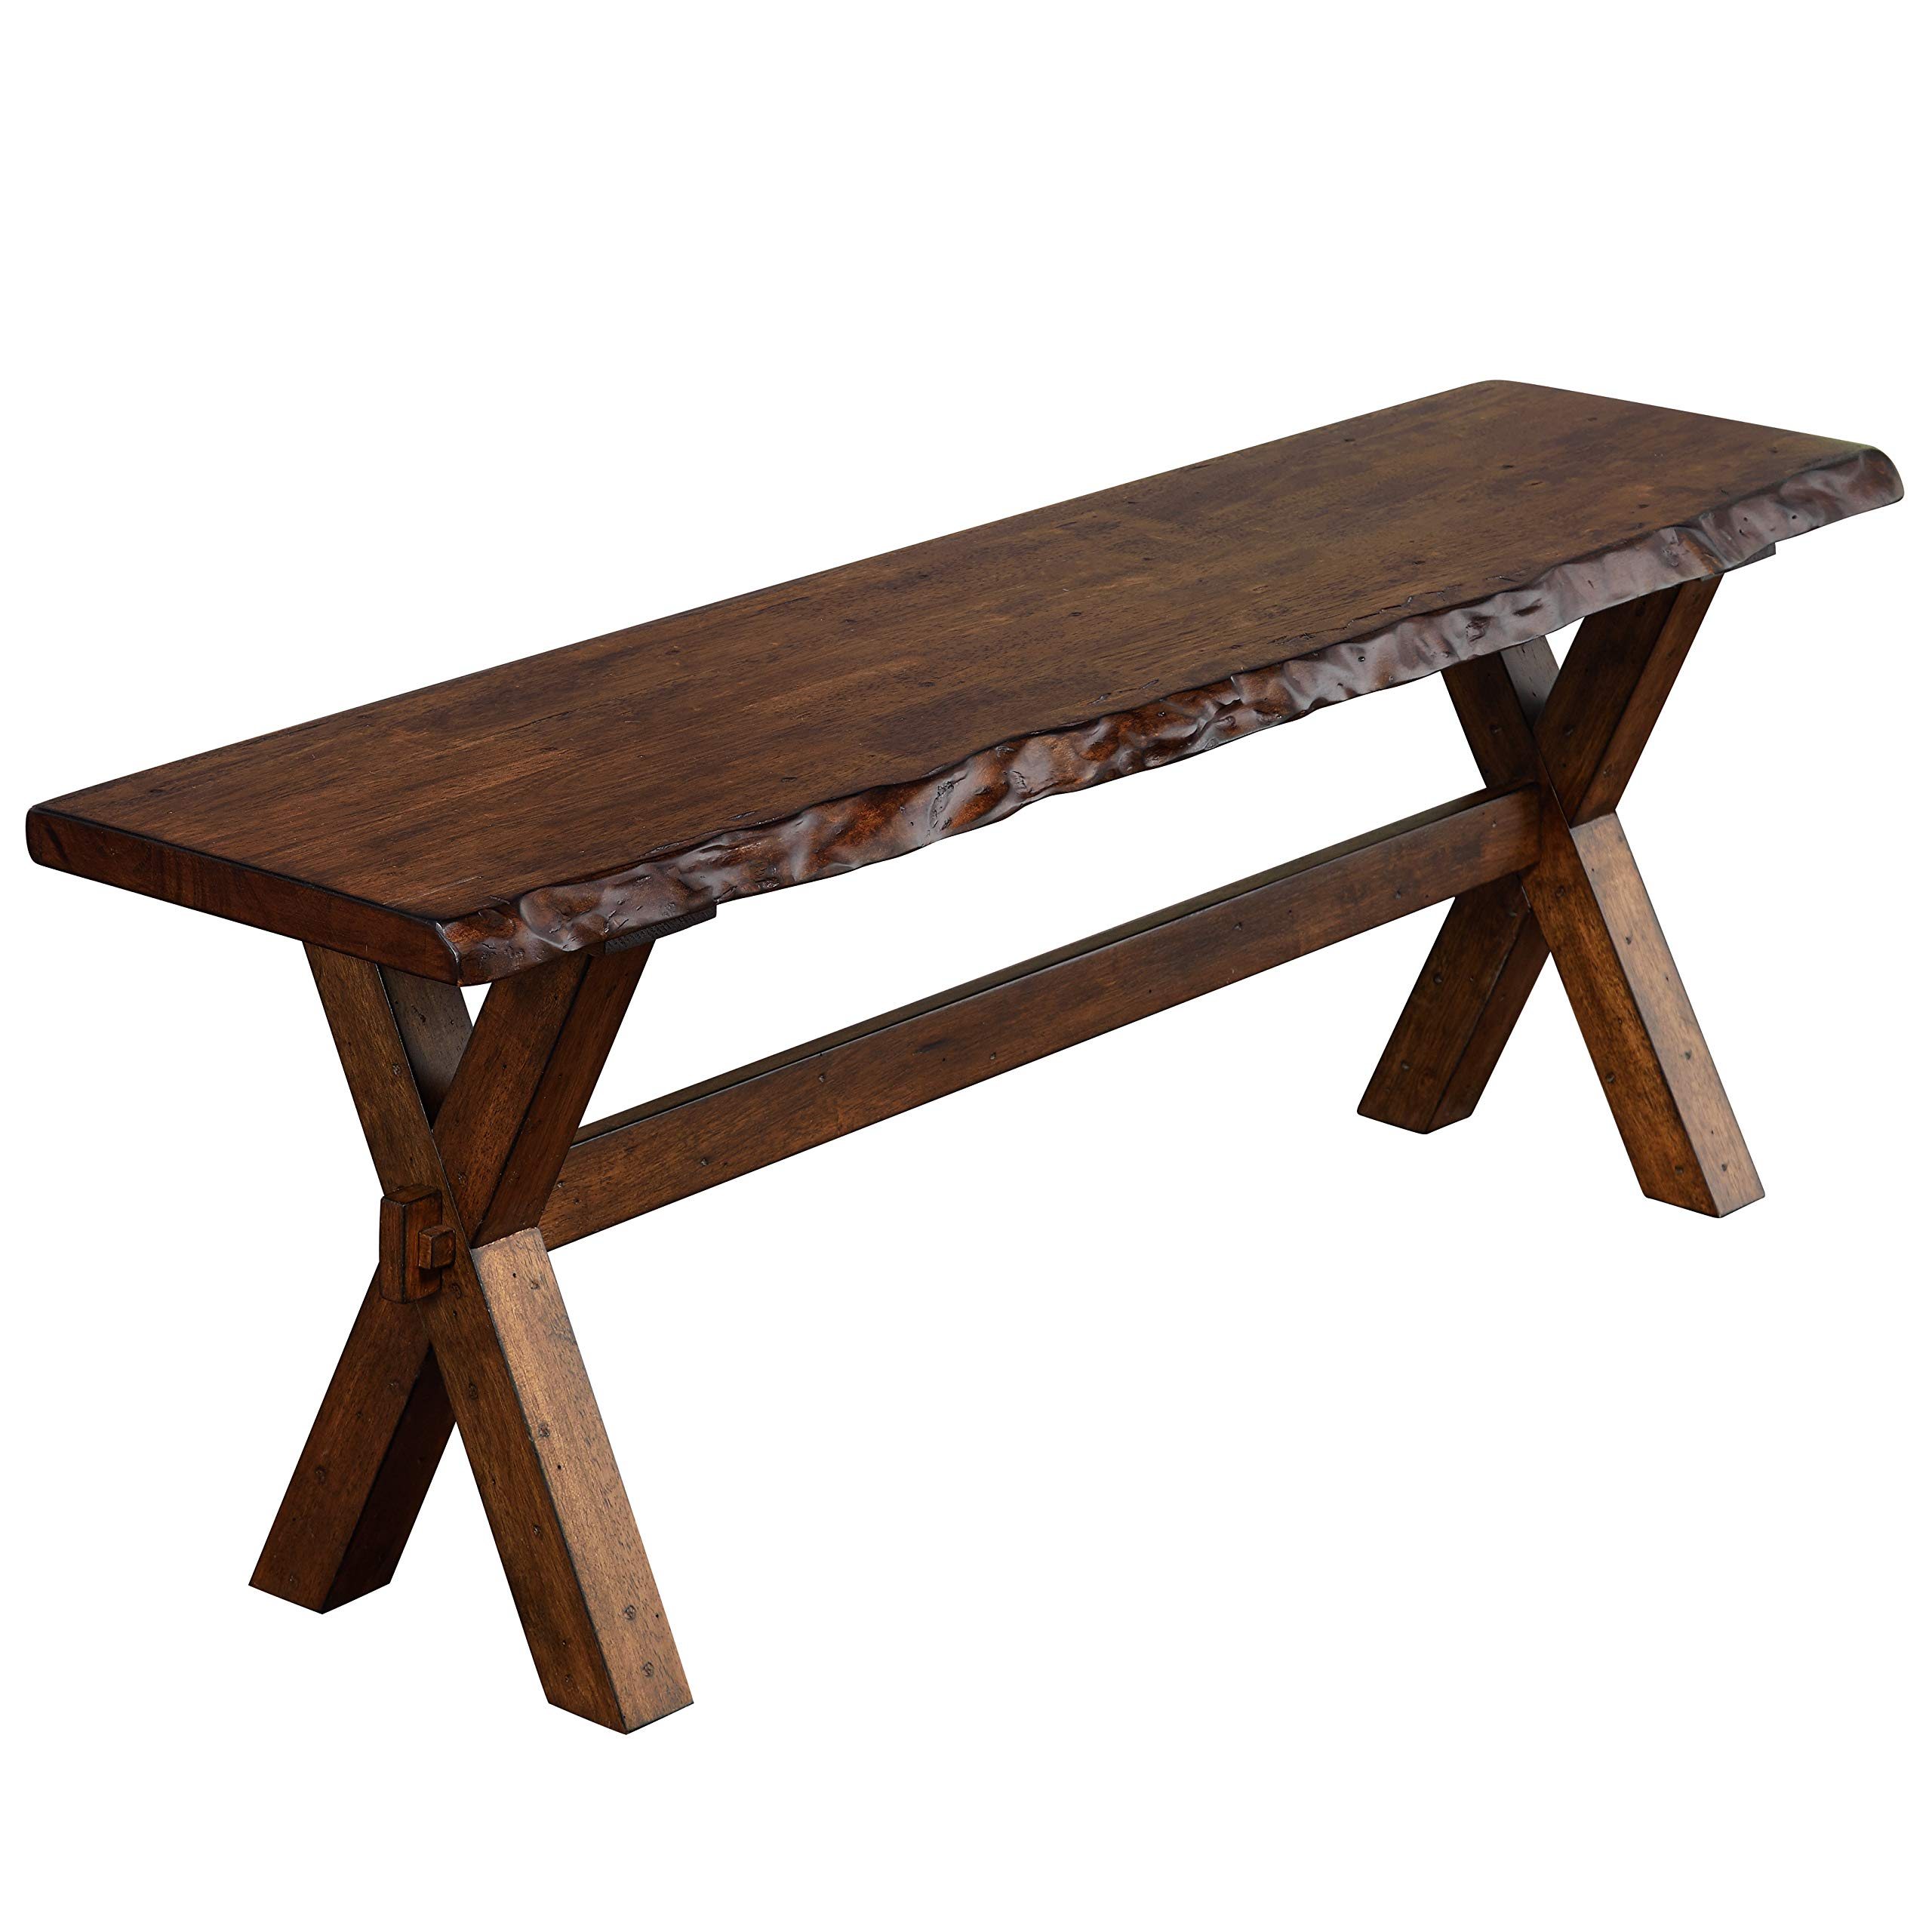 The Mezzanine Shoppe 26318BWN Mandeville Mid Century Wooden Dining Bench, 47.6'', Brown